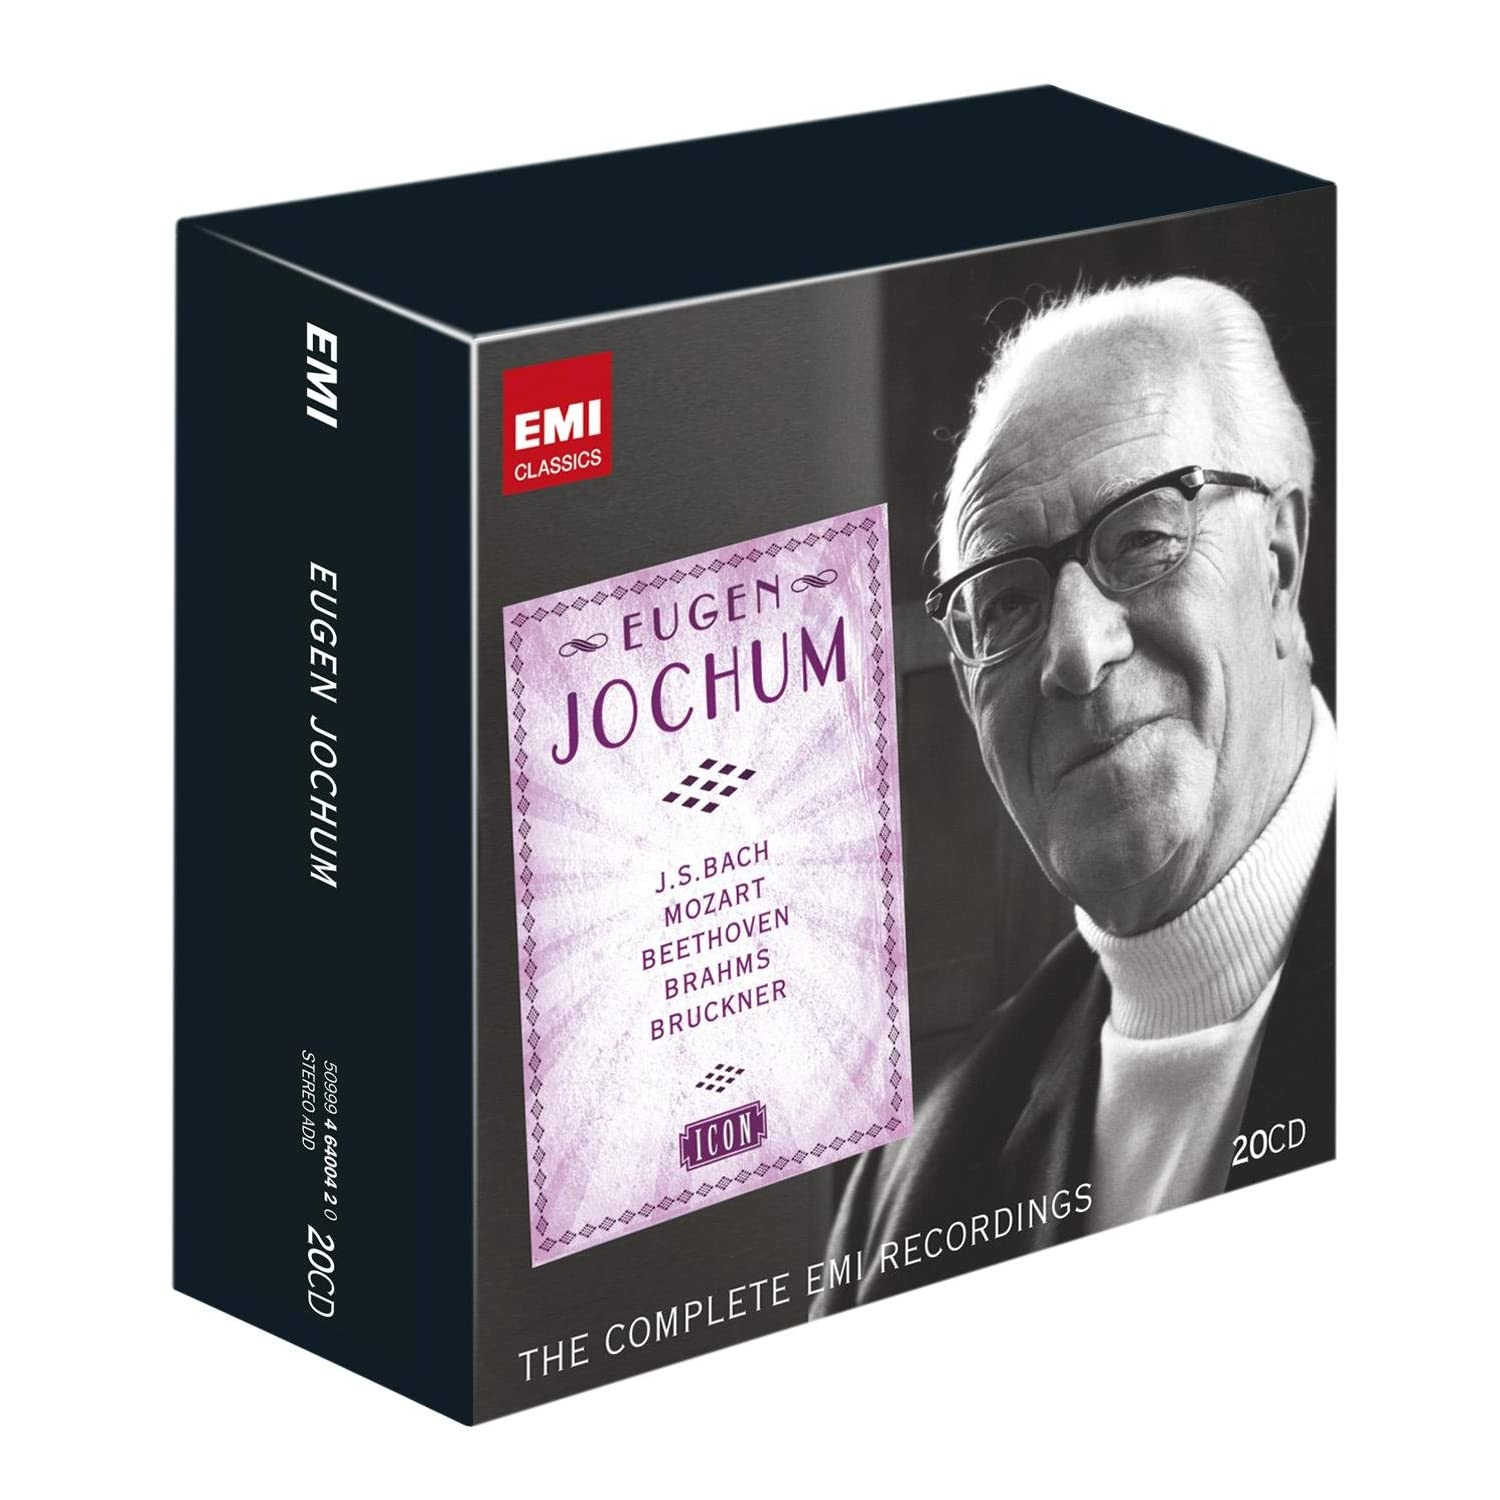 eugen jochum musician s musician maestro s maestro icon might the essay of interest i m confident that anyone who wants to hear core repertoire played un surpassable insight and understanding will